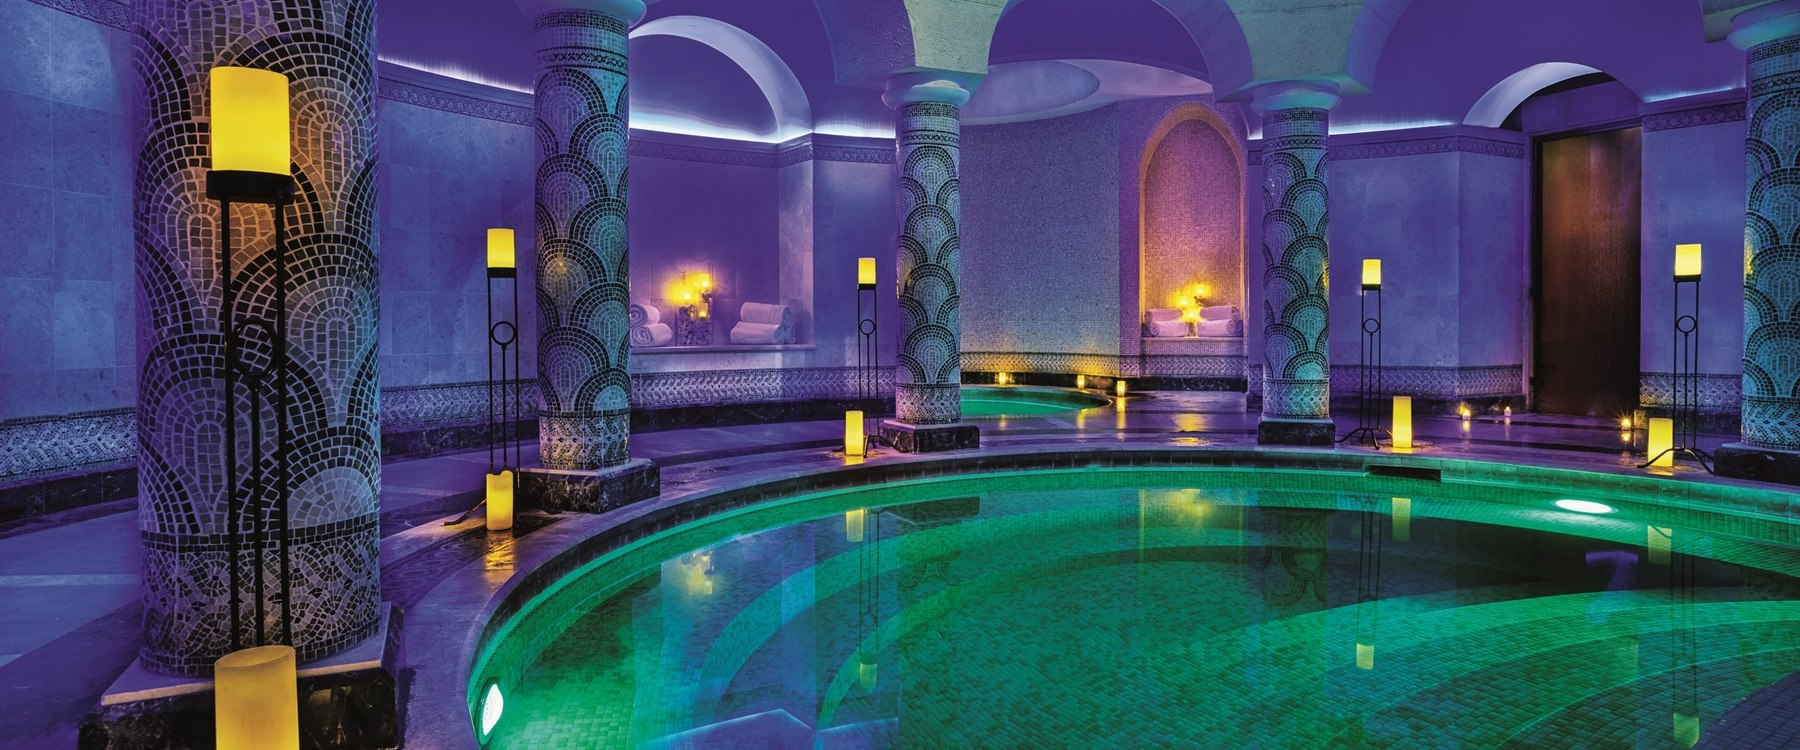 Hammam Pool at The Ritz Carlton Bahrain Hotel Villas and Spa